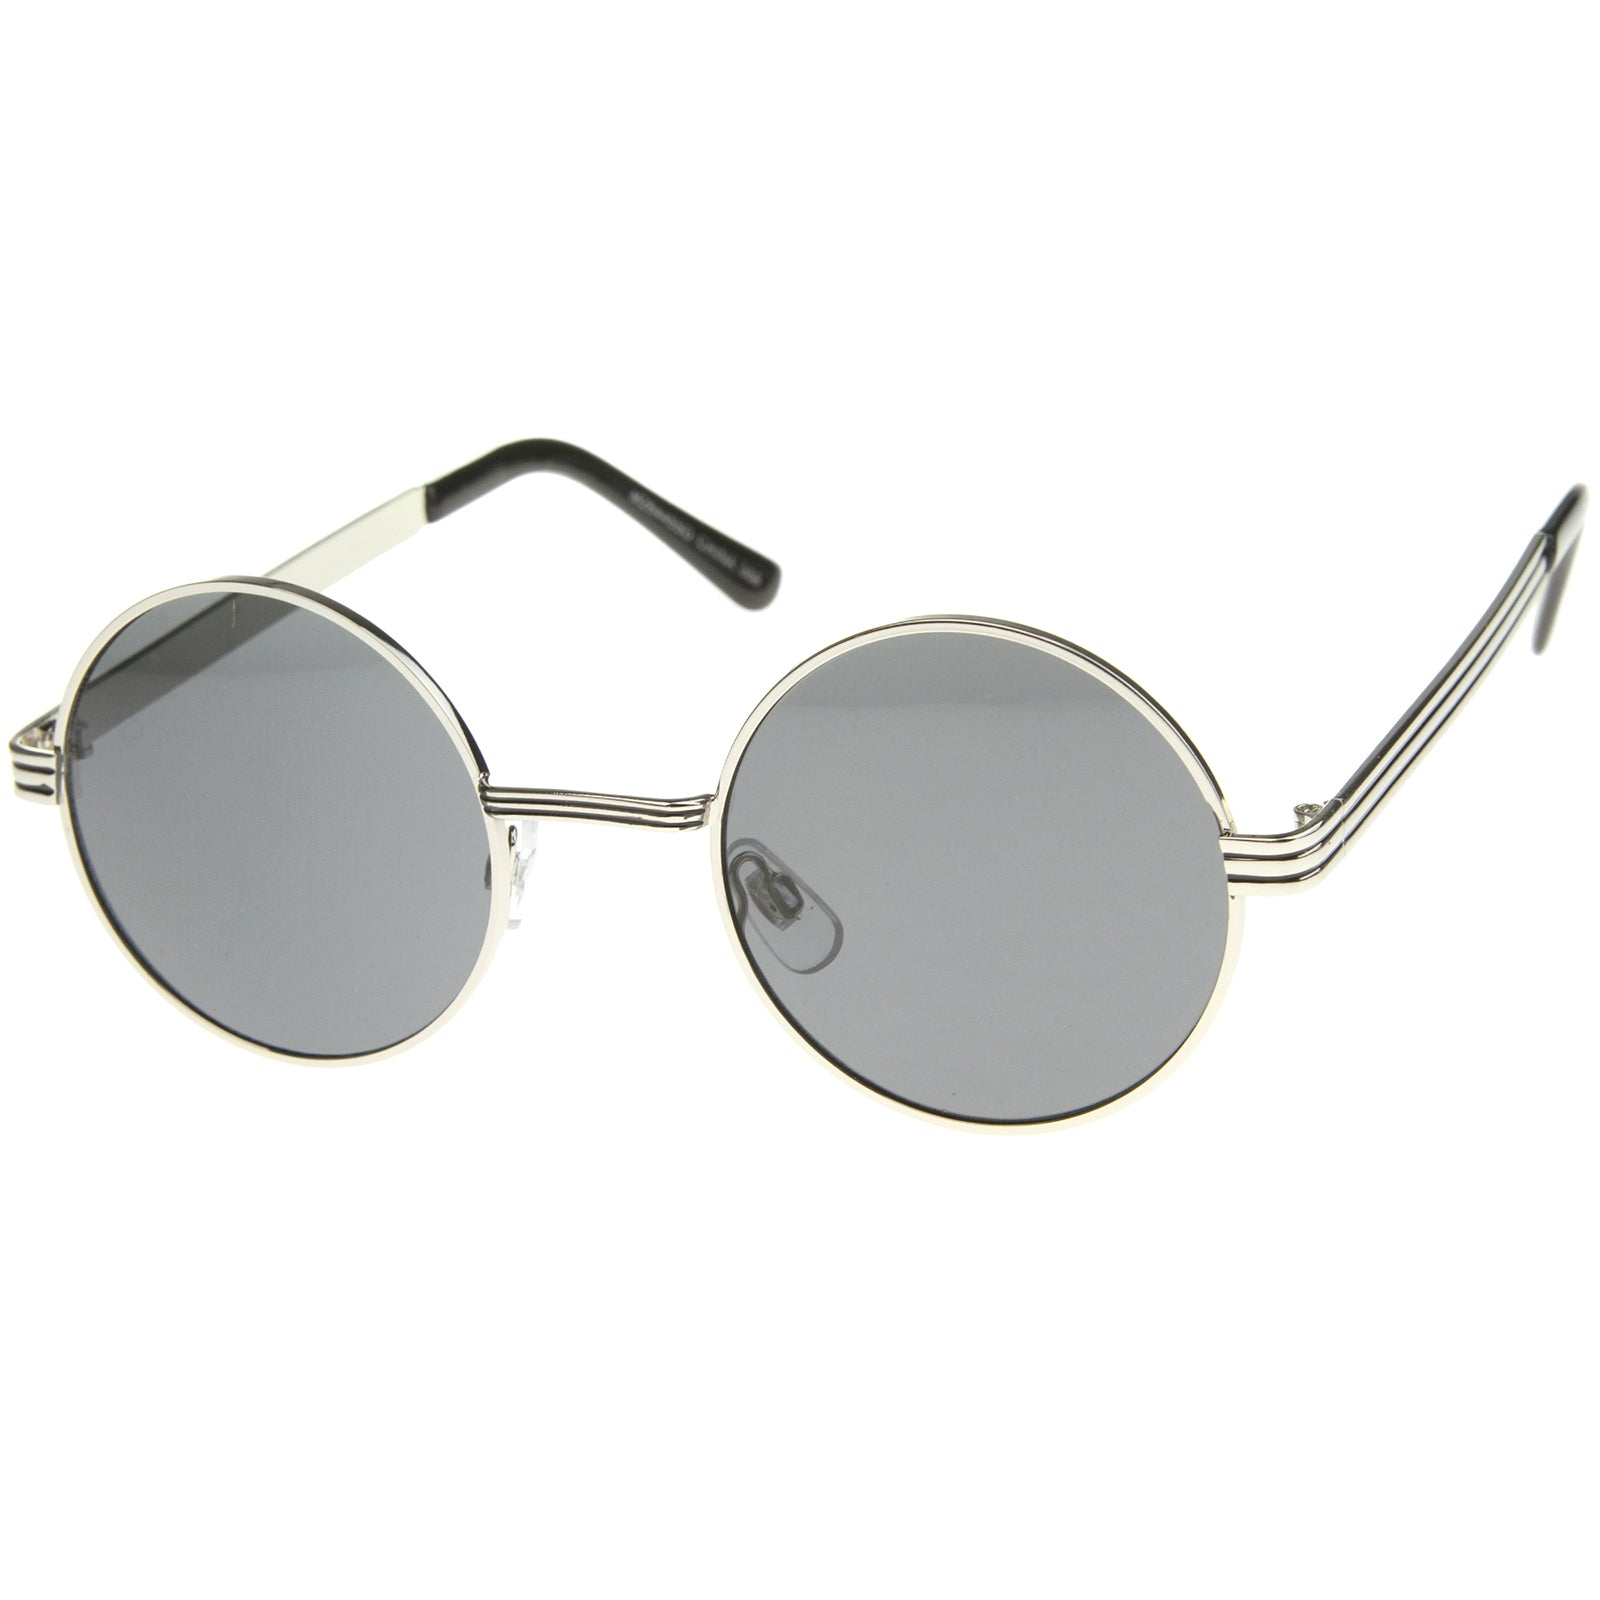 Retro Fashion Metal Textured Frame Flat Lens Round Sunglasses 50mm - sunglass.la - 10